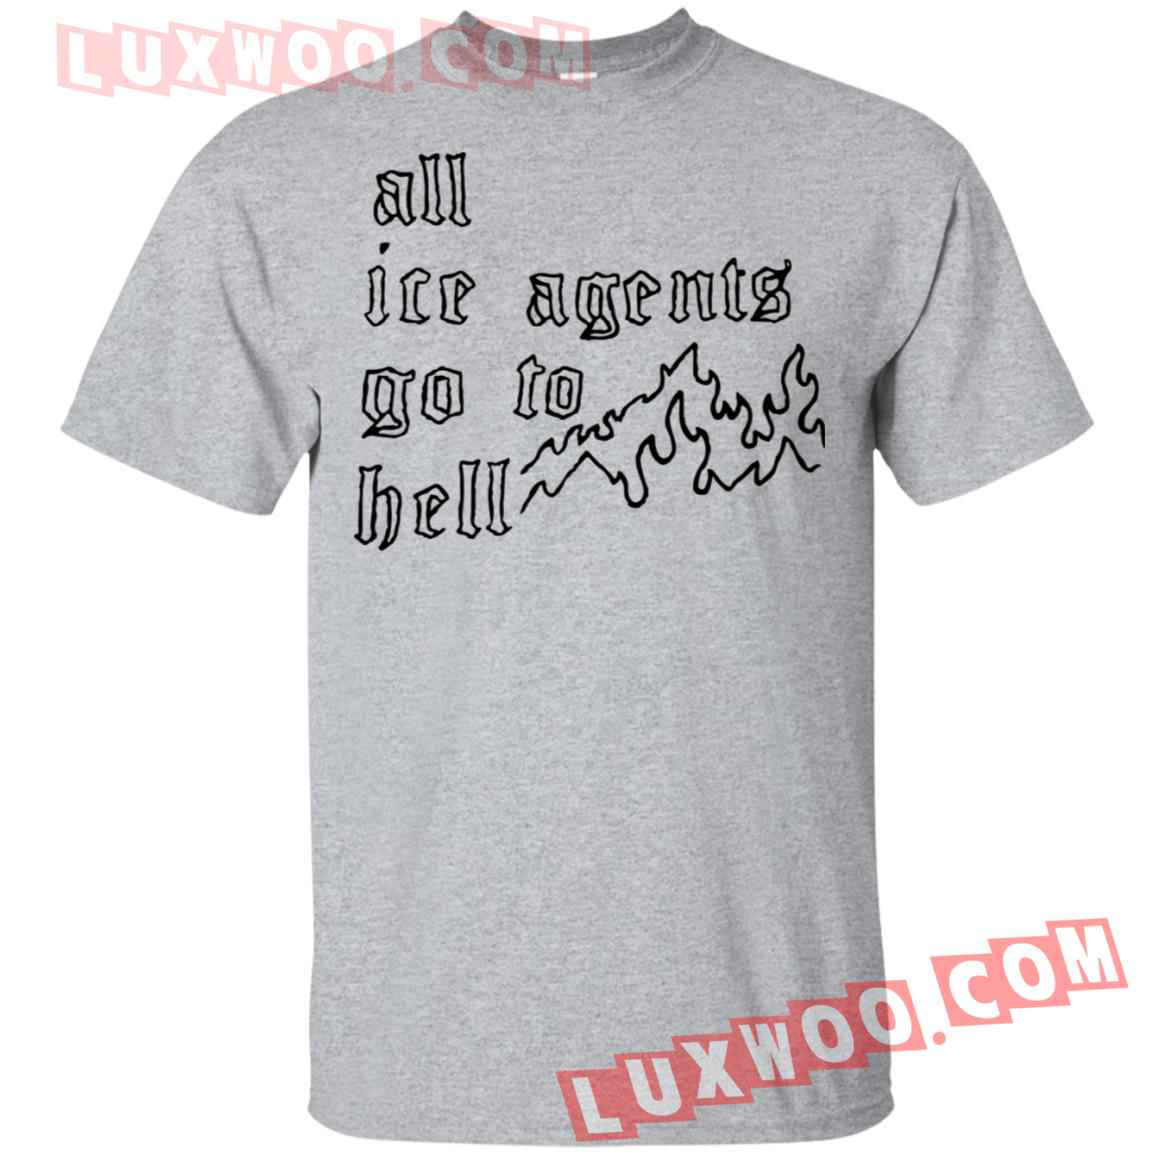 All Ice Agents Go To Hell Shirt